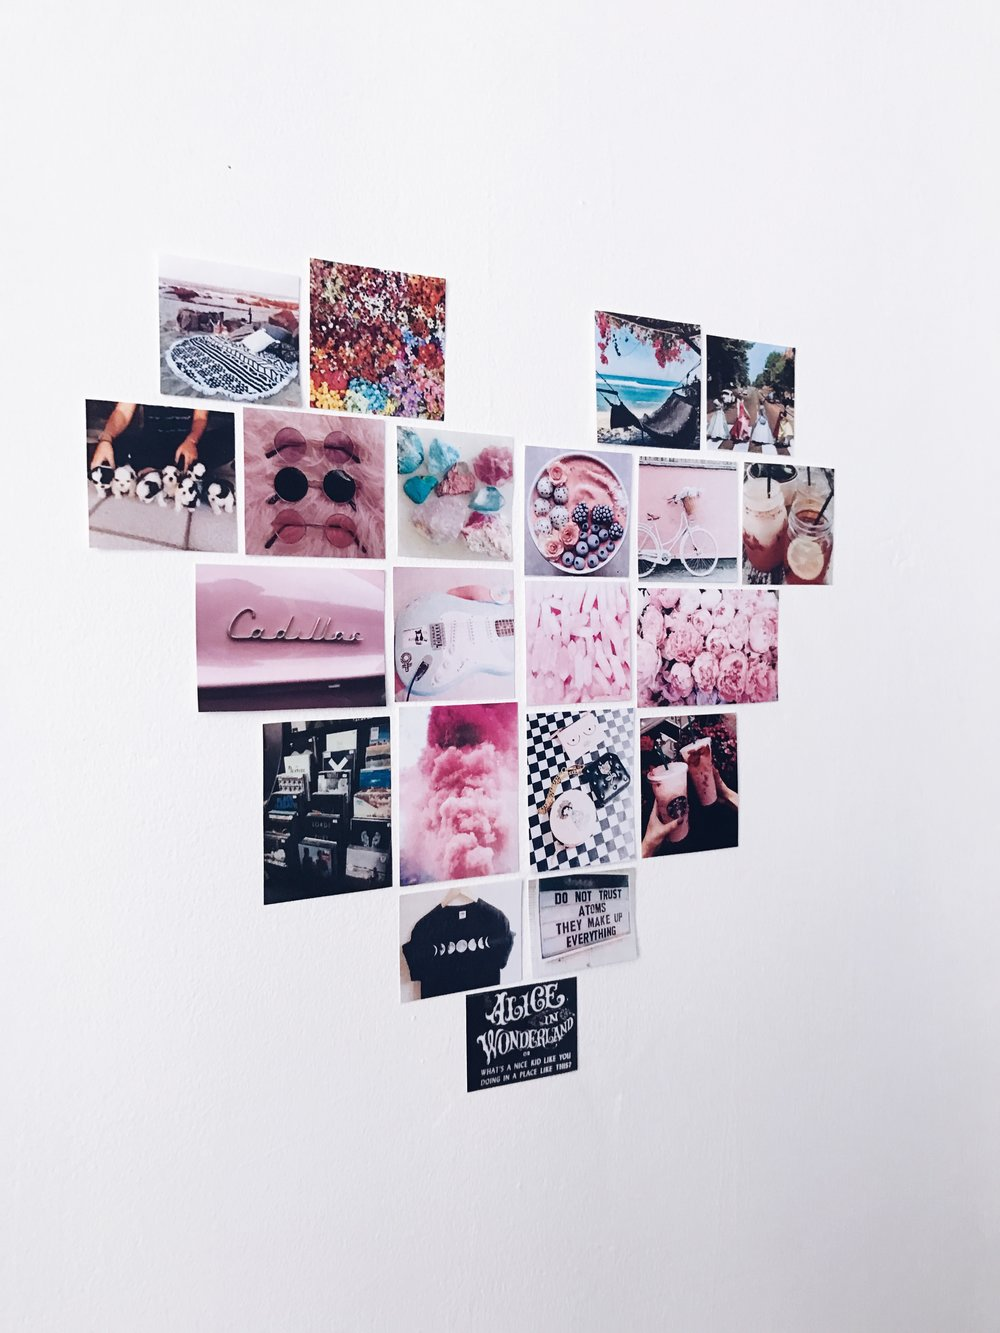 Printed Pictures: Tumblr & Pinterest, all rights to their respective owners  Brands I see included are Starbucks, Cadillac, Valfre